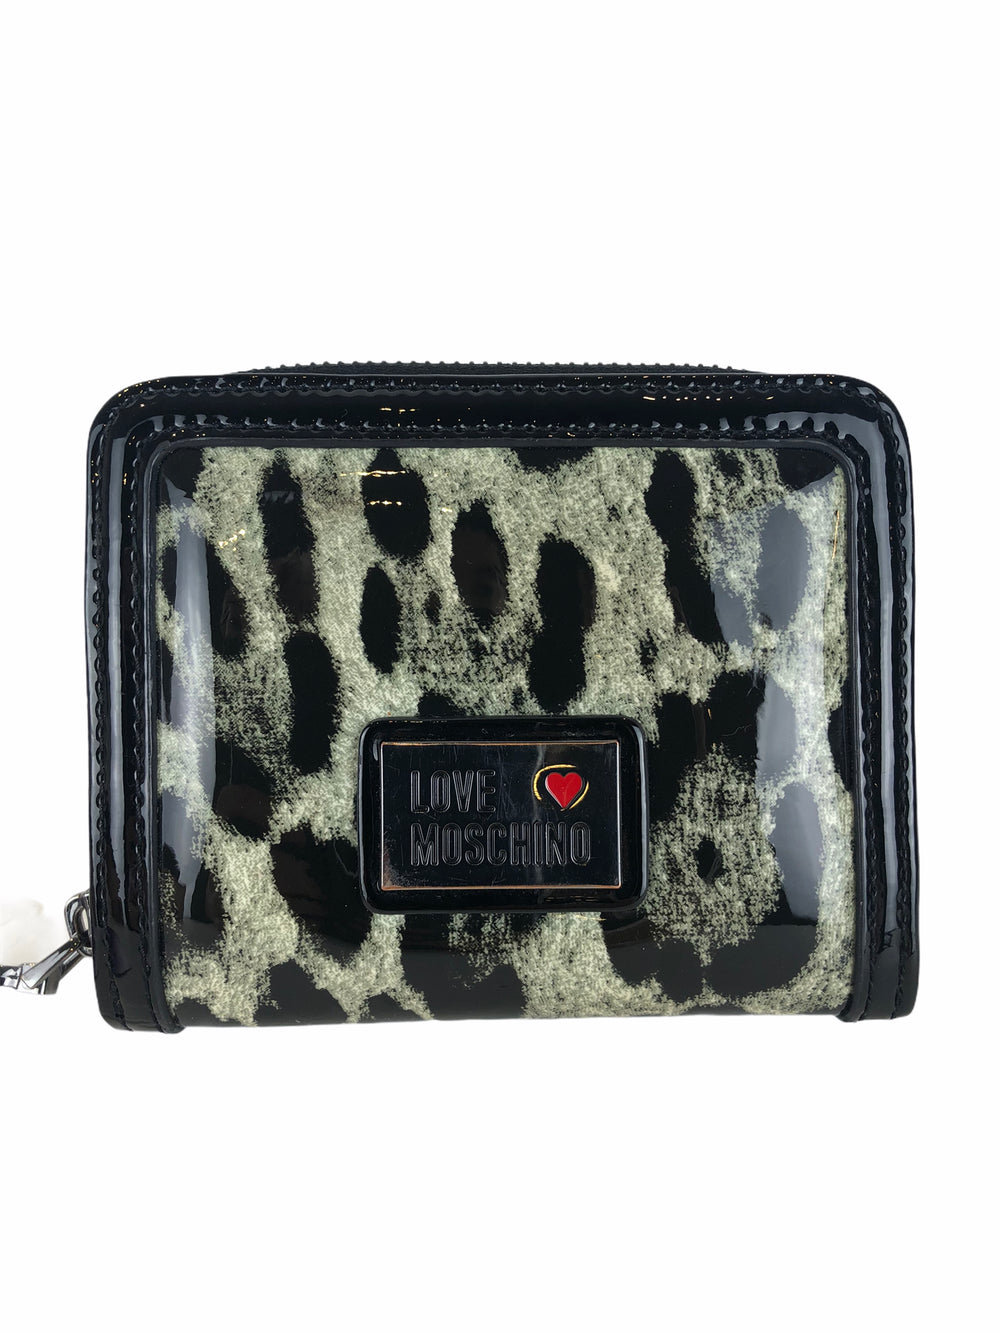 Moschino Leopard Print Wallet - As Seen on Instagram 18/10/2020